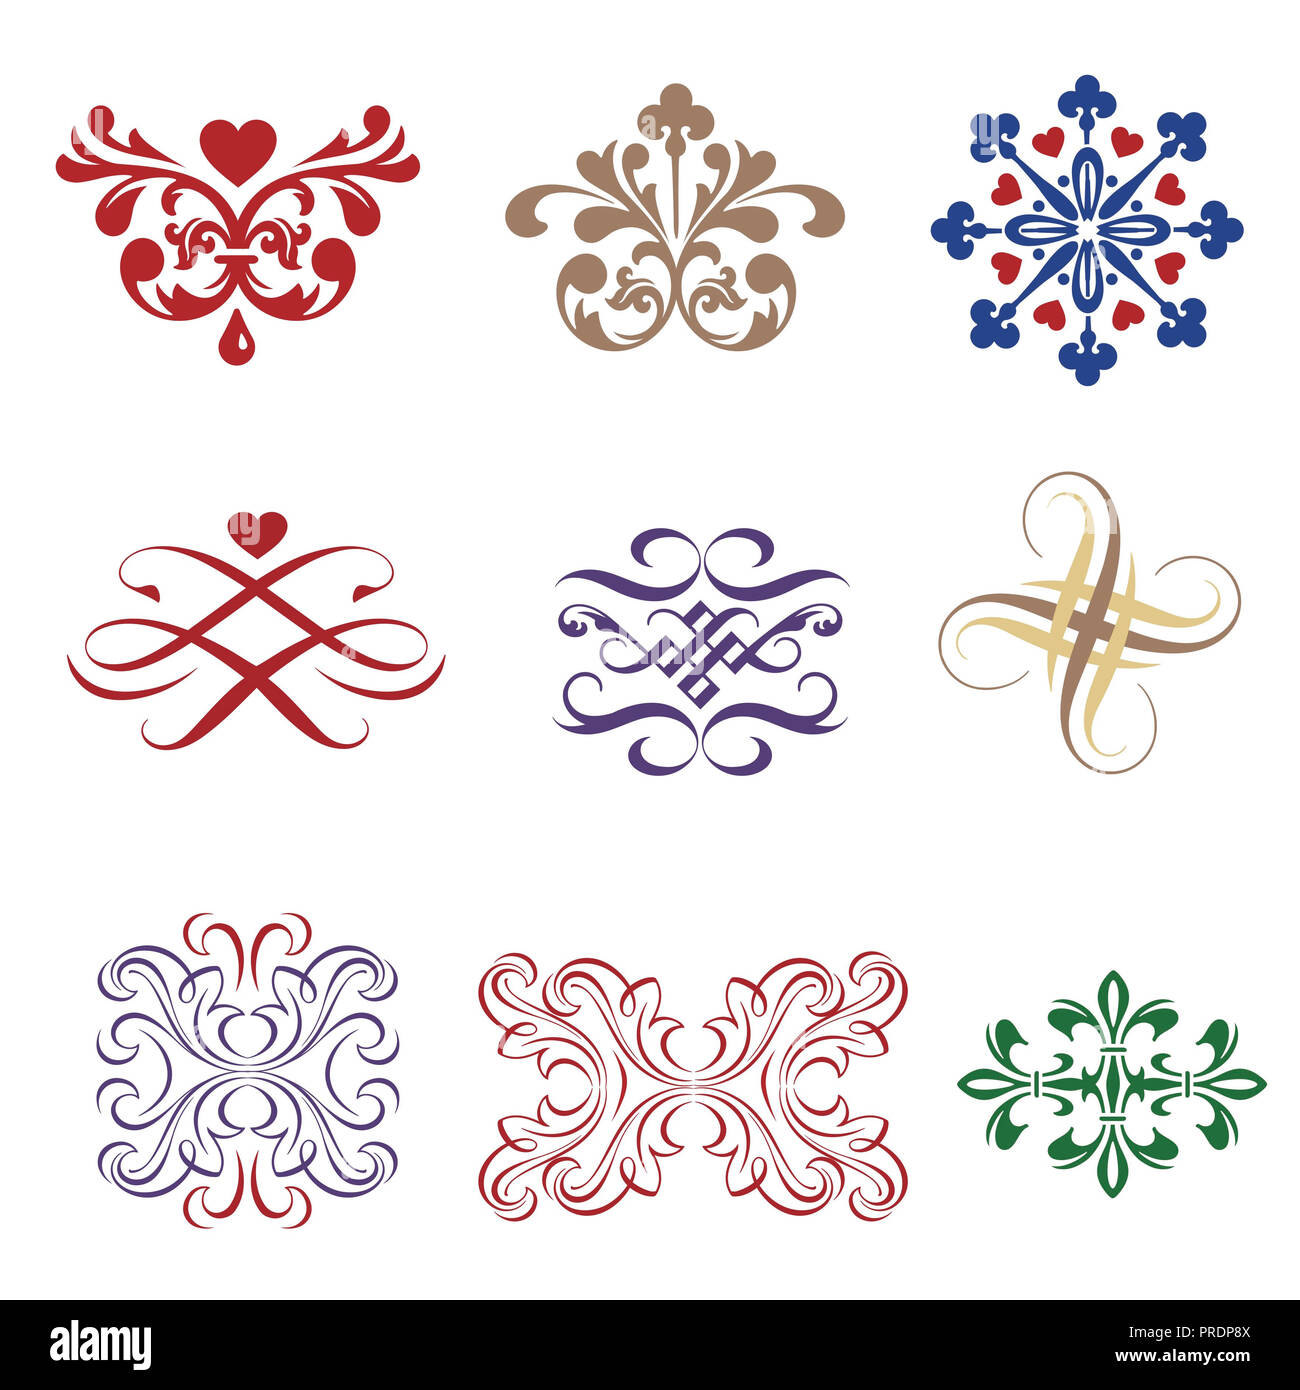 Assorted ornaments on white background - Stock Image